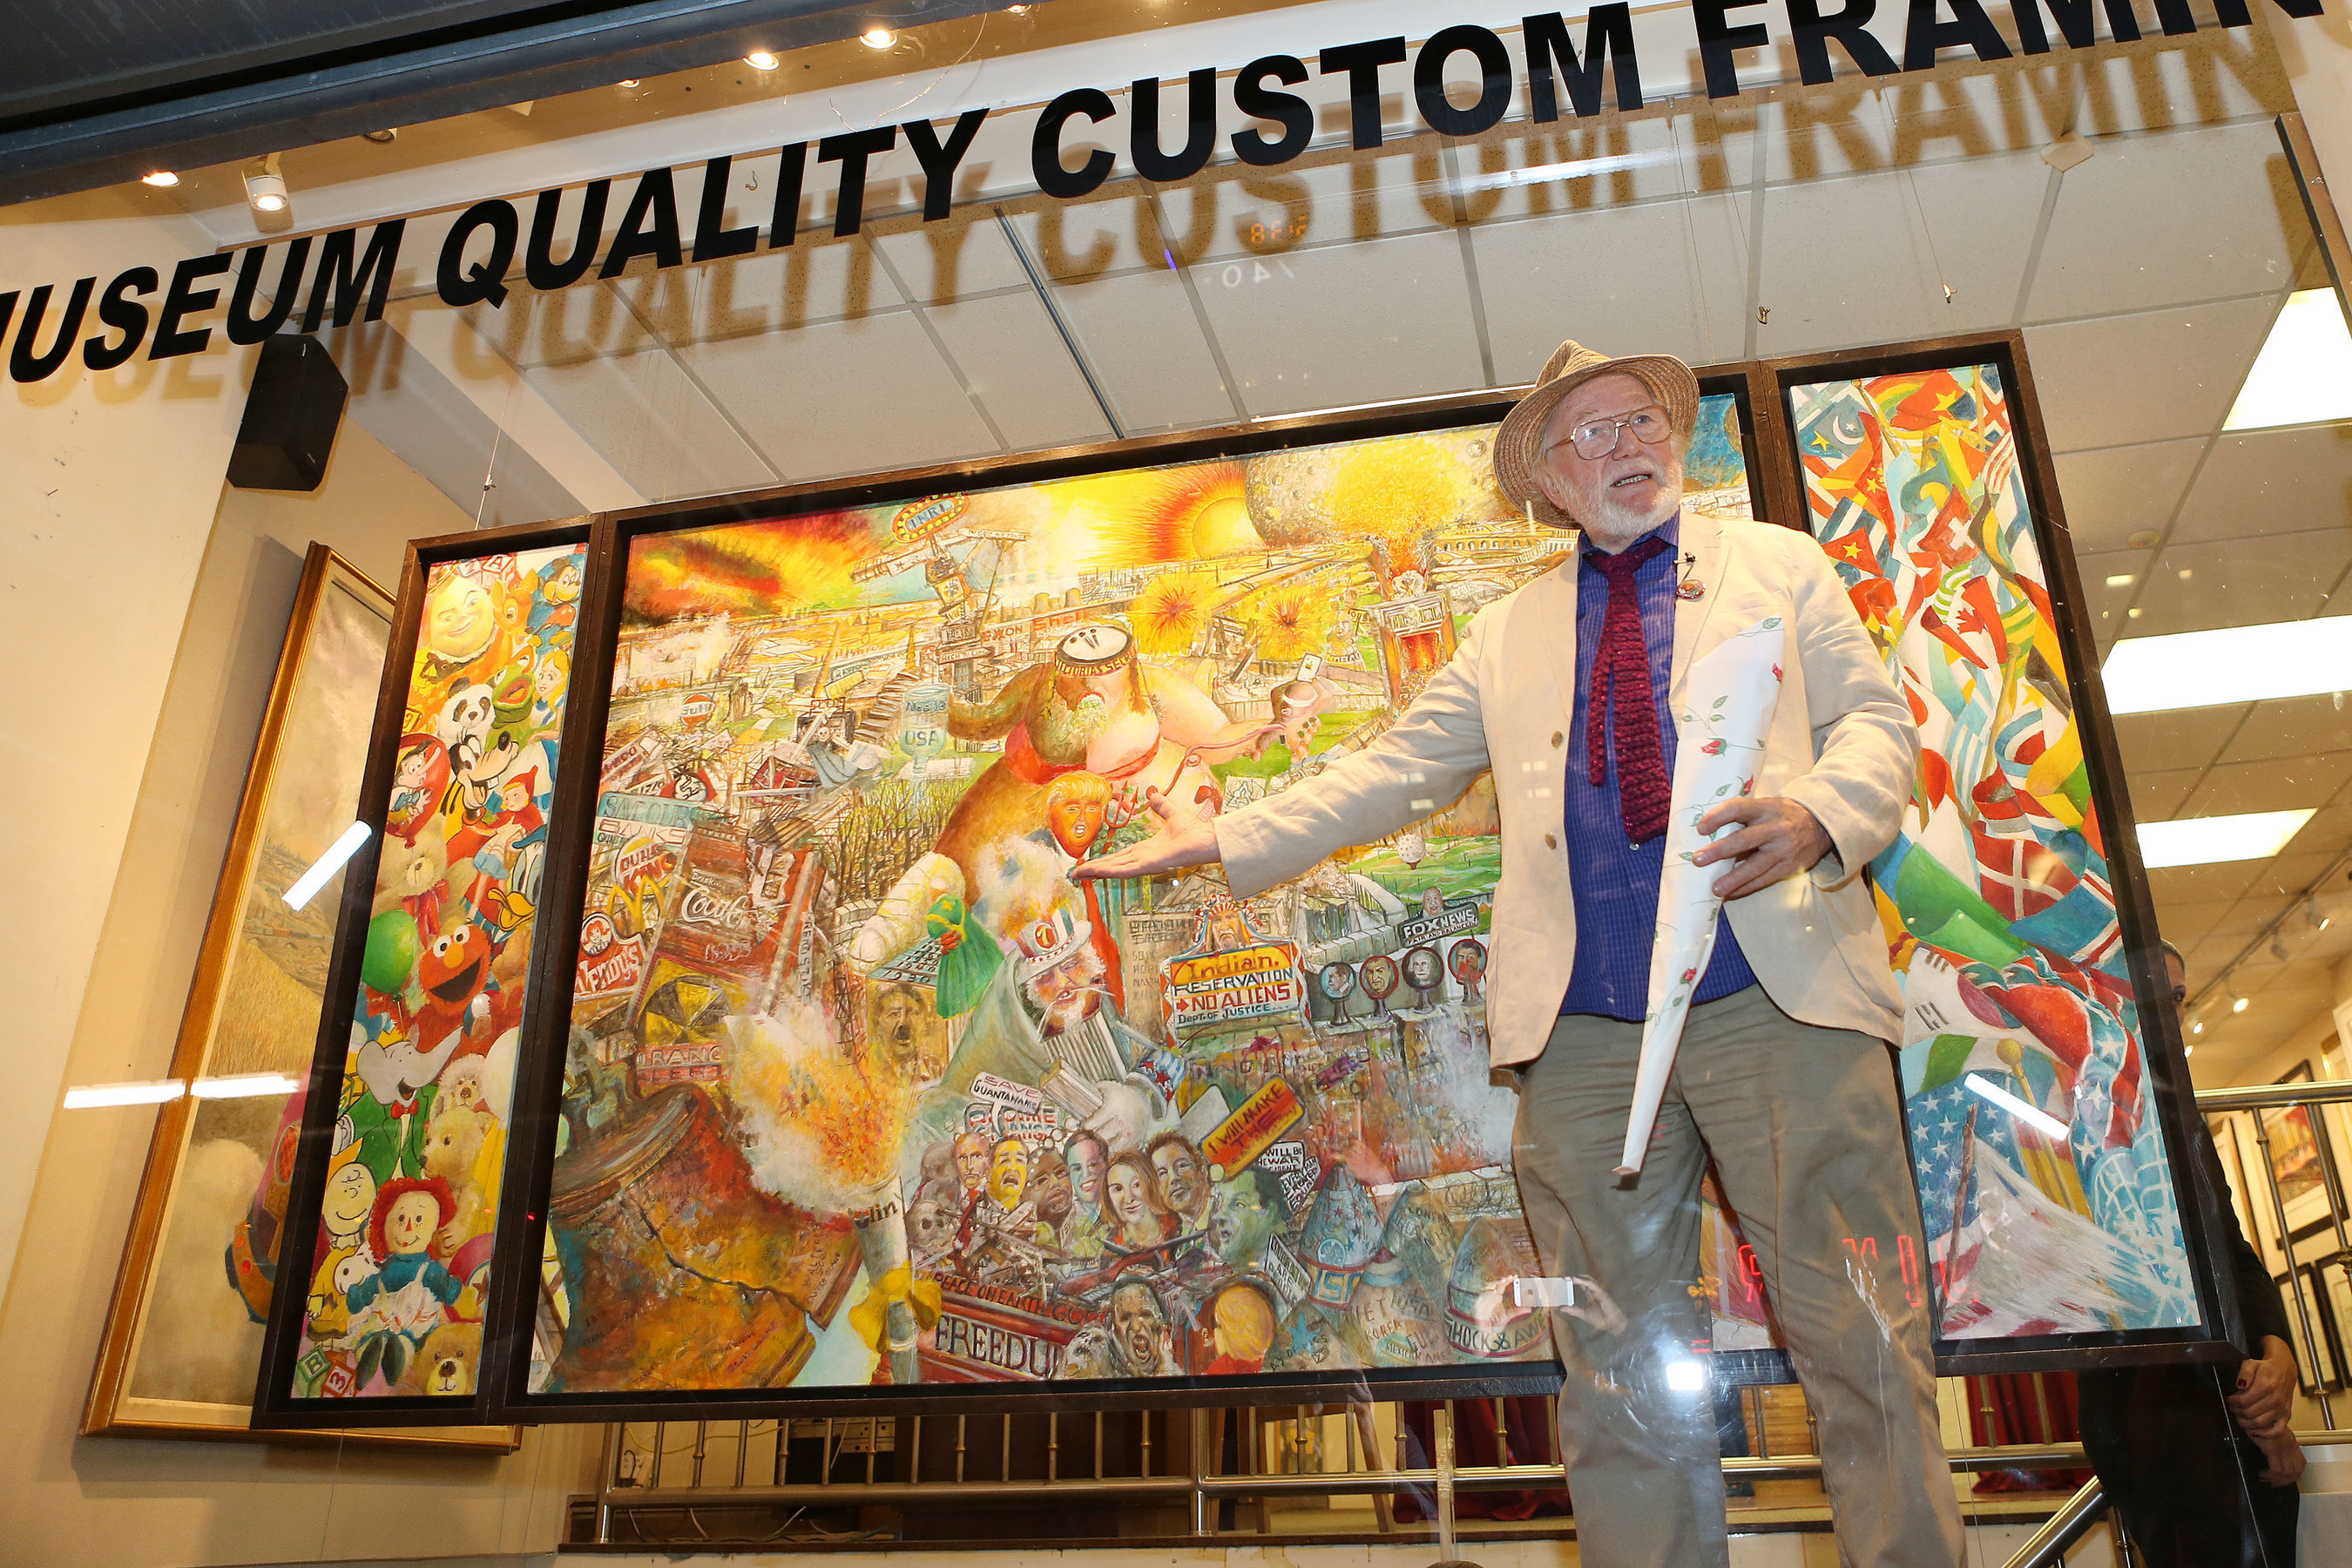 Artist Robert Cenedella at the unveiling of his painting, Fin del Mundo (End of the World) in Manhattan. (Credit: Krista Kennell/PMC)